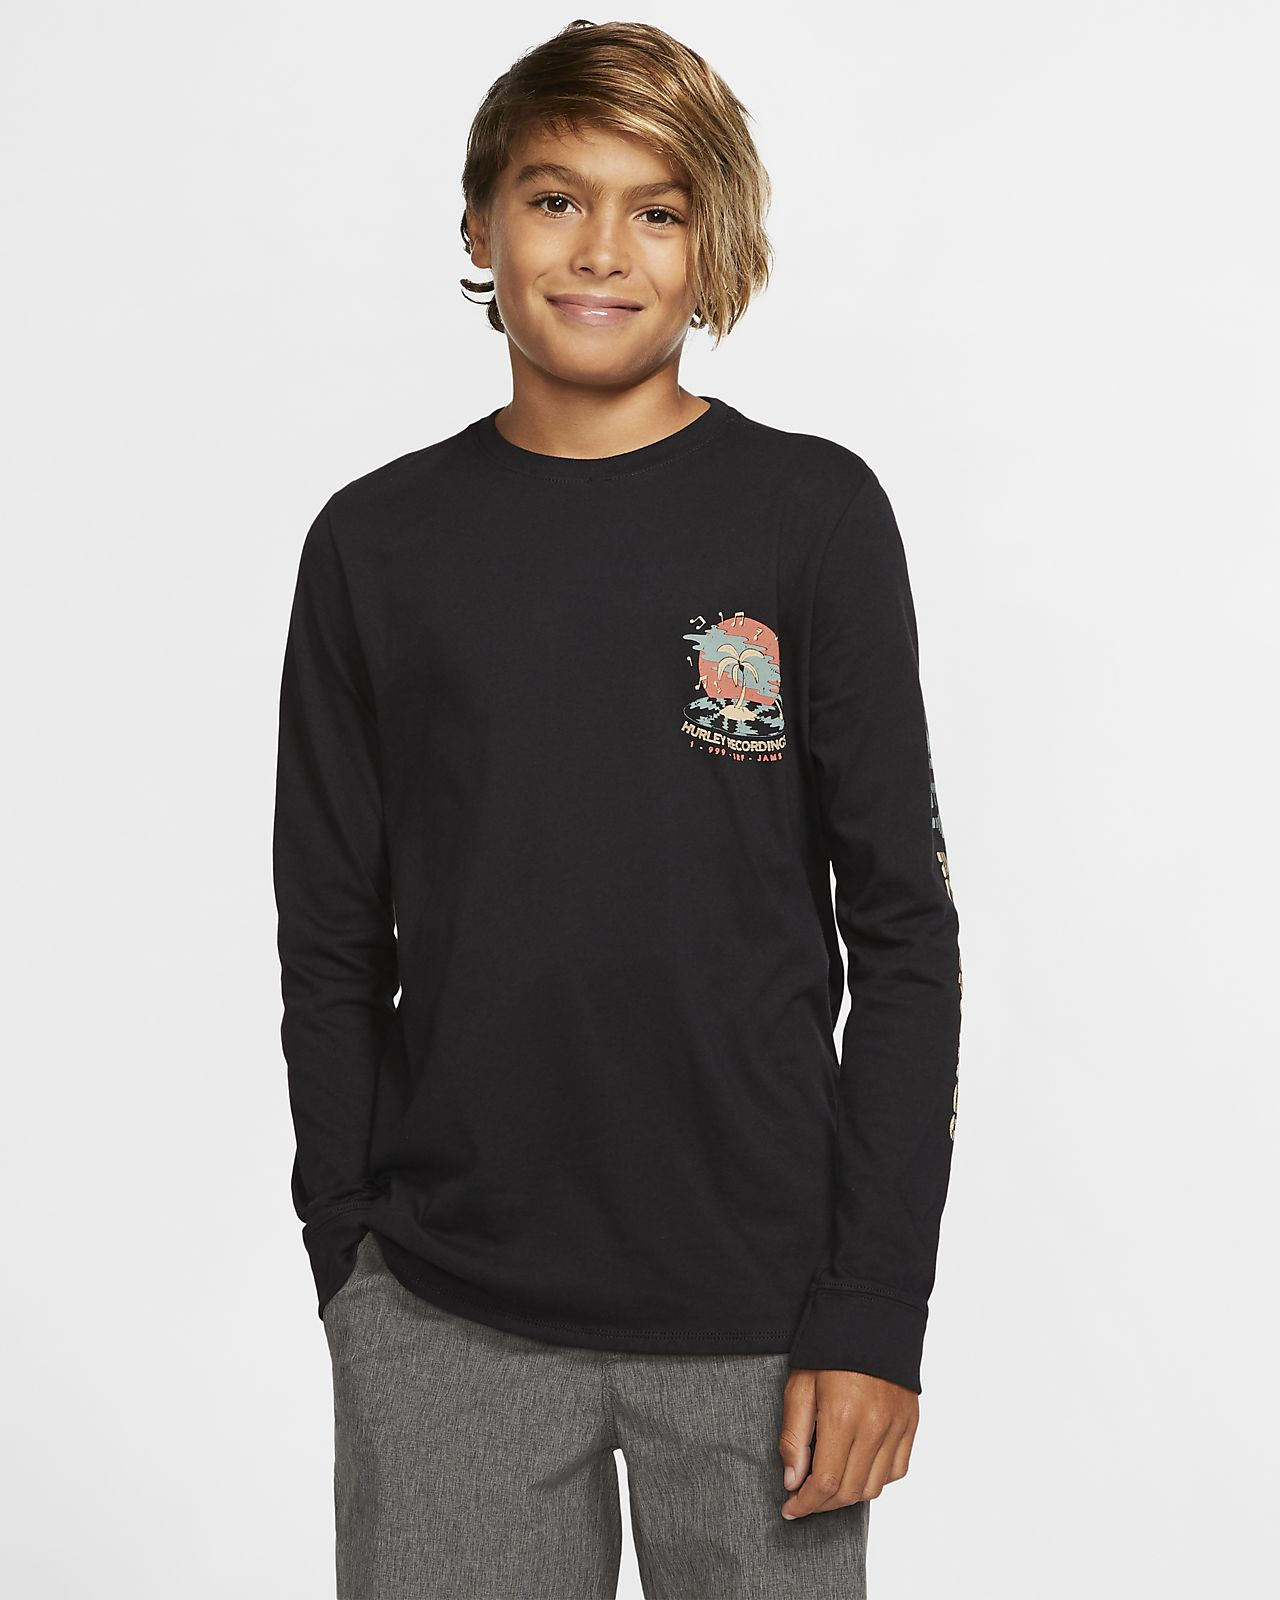 Hurley Premium Record Palms Boys' Long-Sleeve T-Shirt